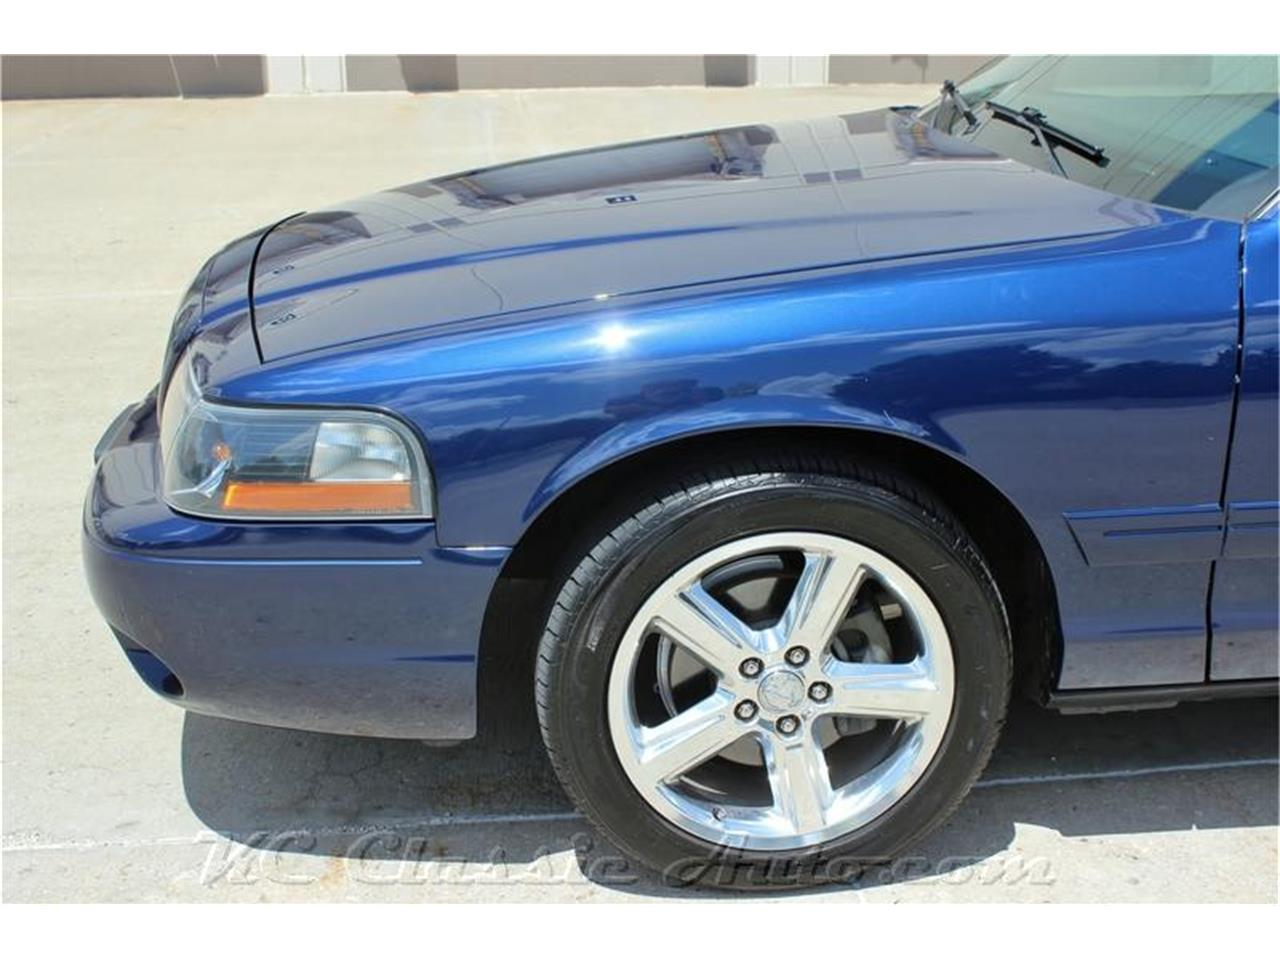 2003 Mercury Marauder for sale in Lenexa, KS – photo 31